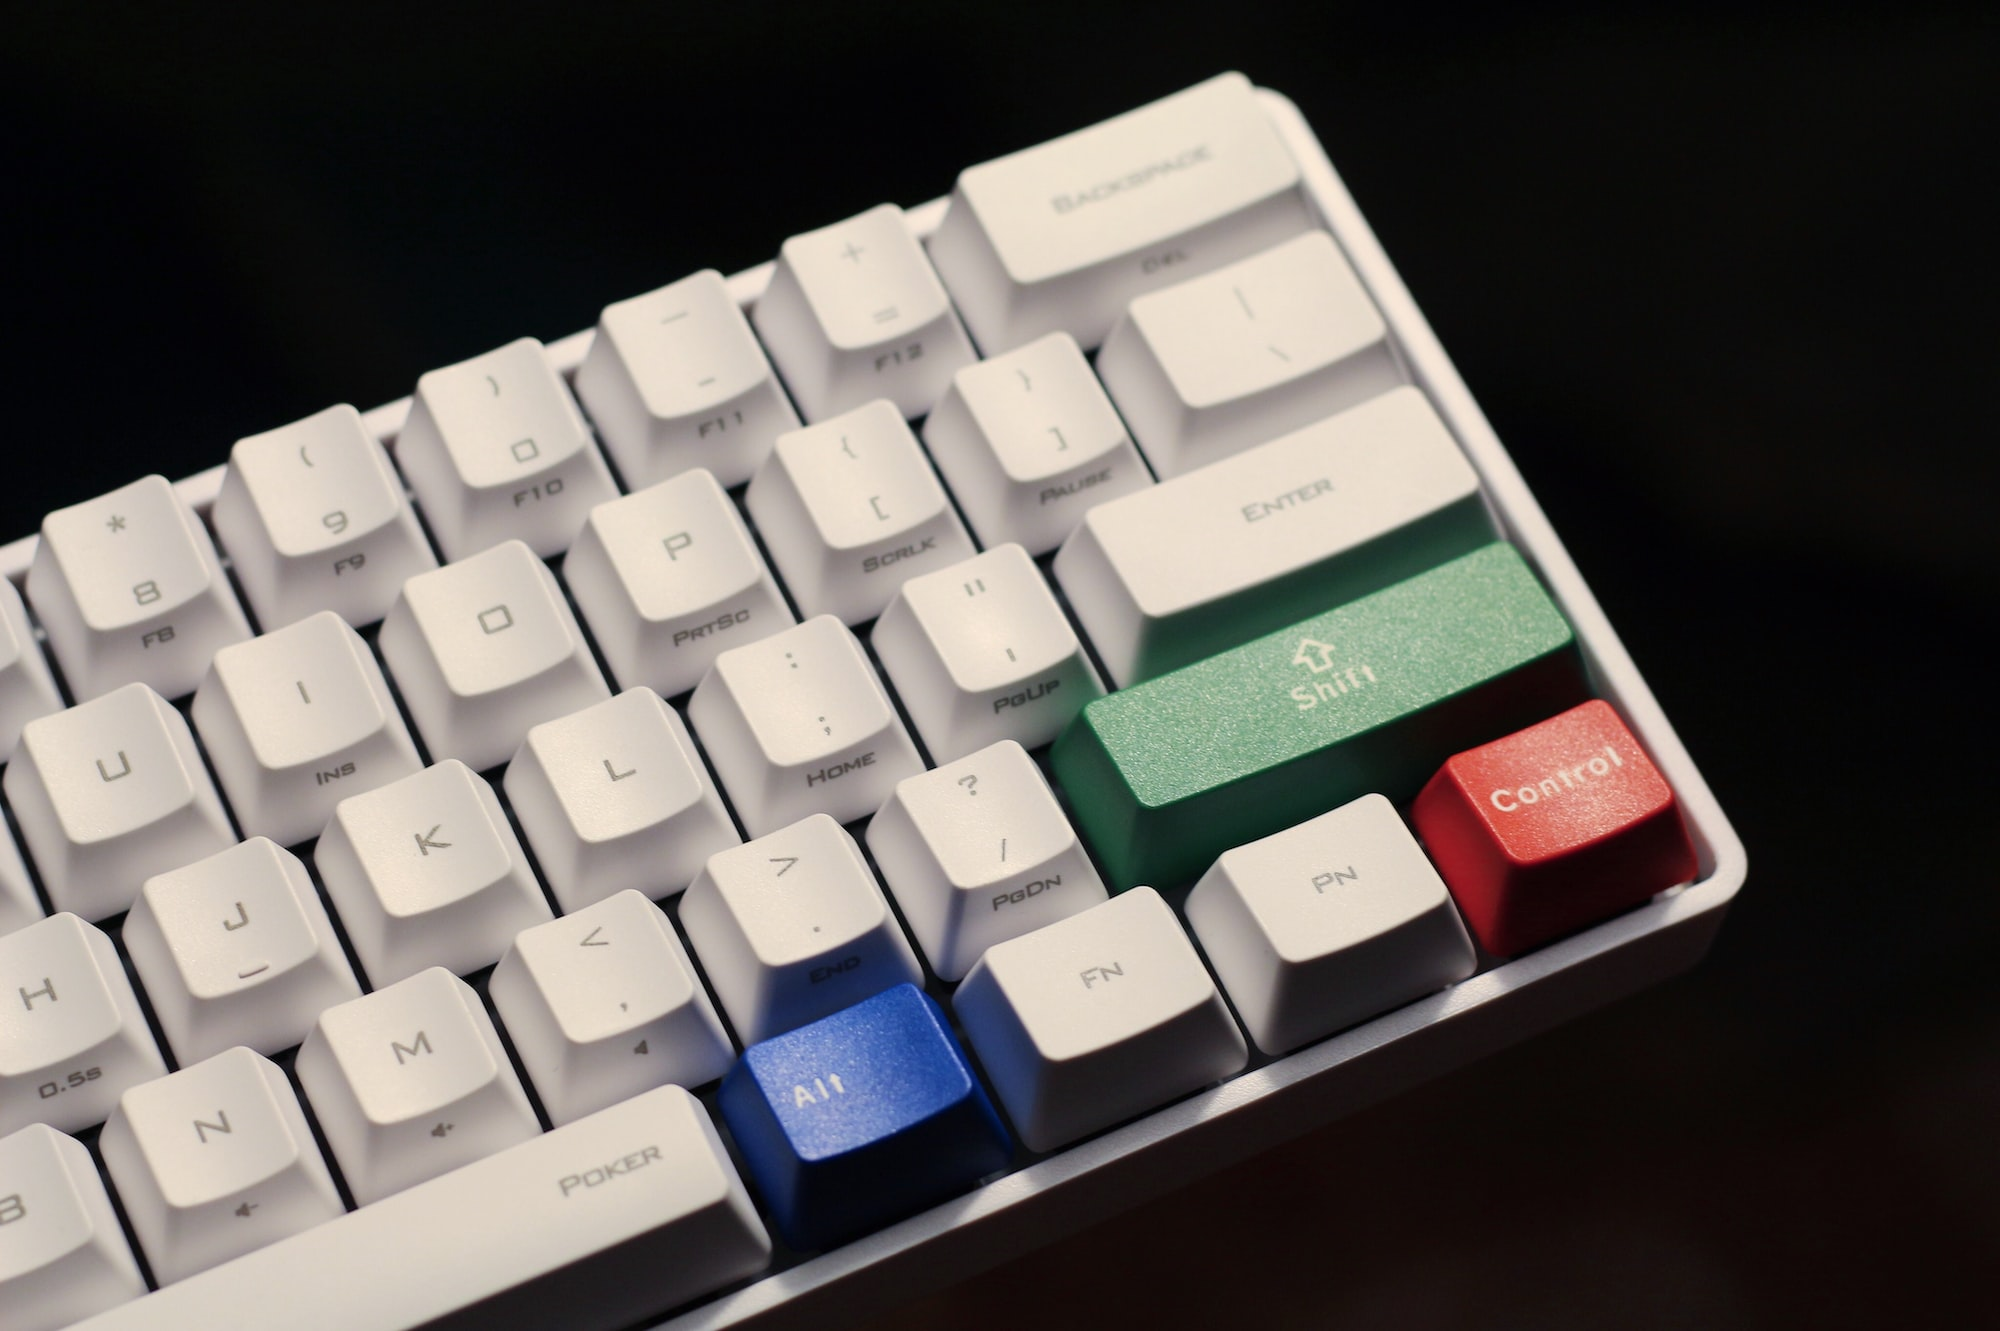 Ergodone, ruining all other keyboards forever